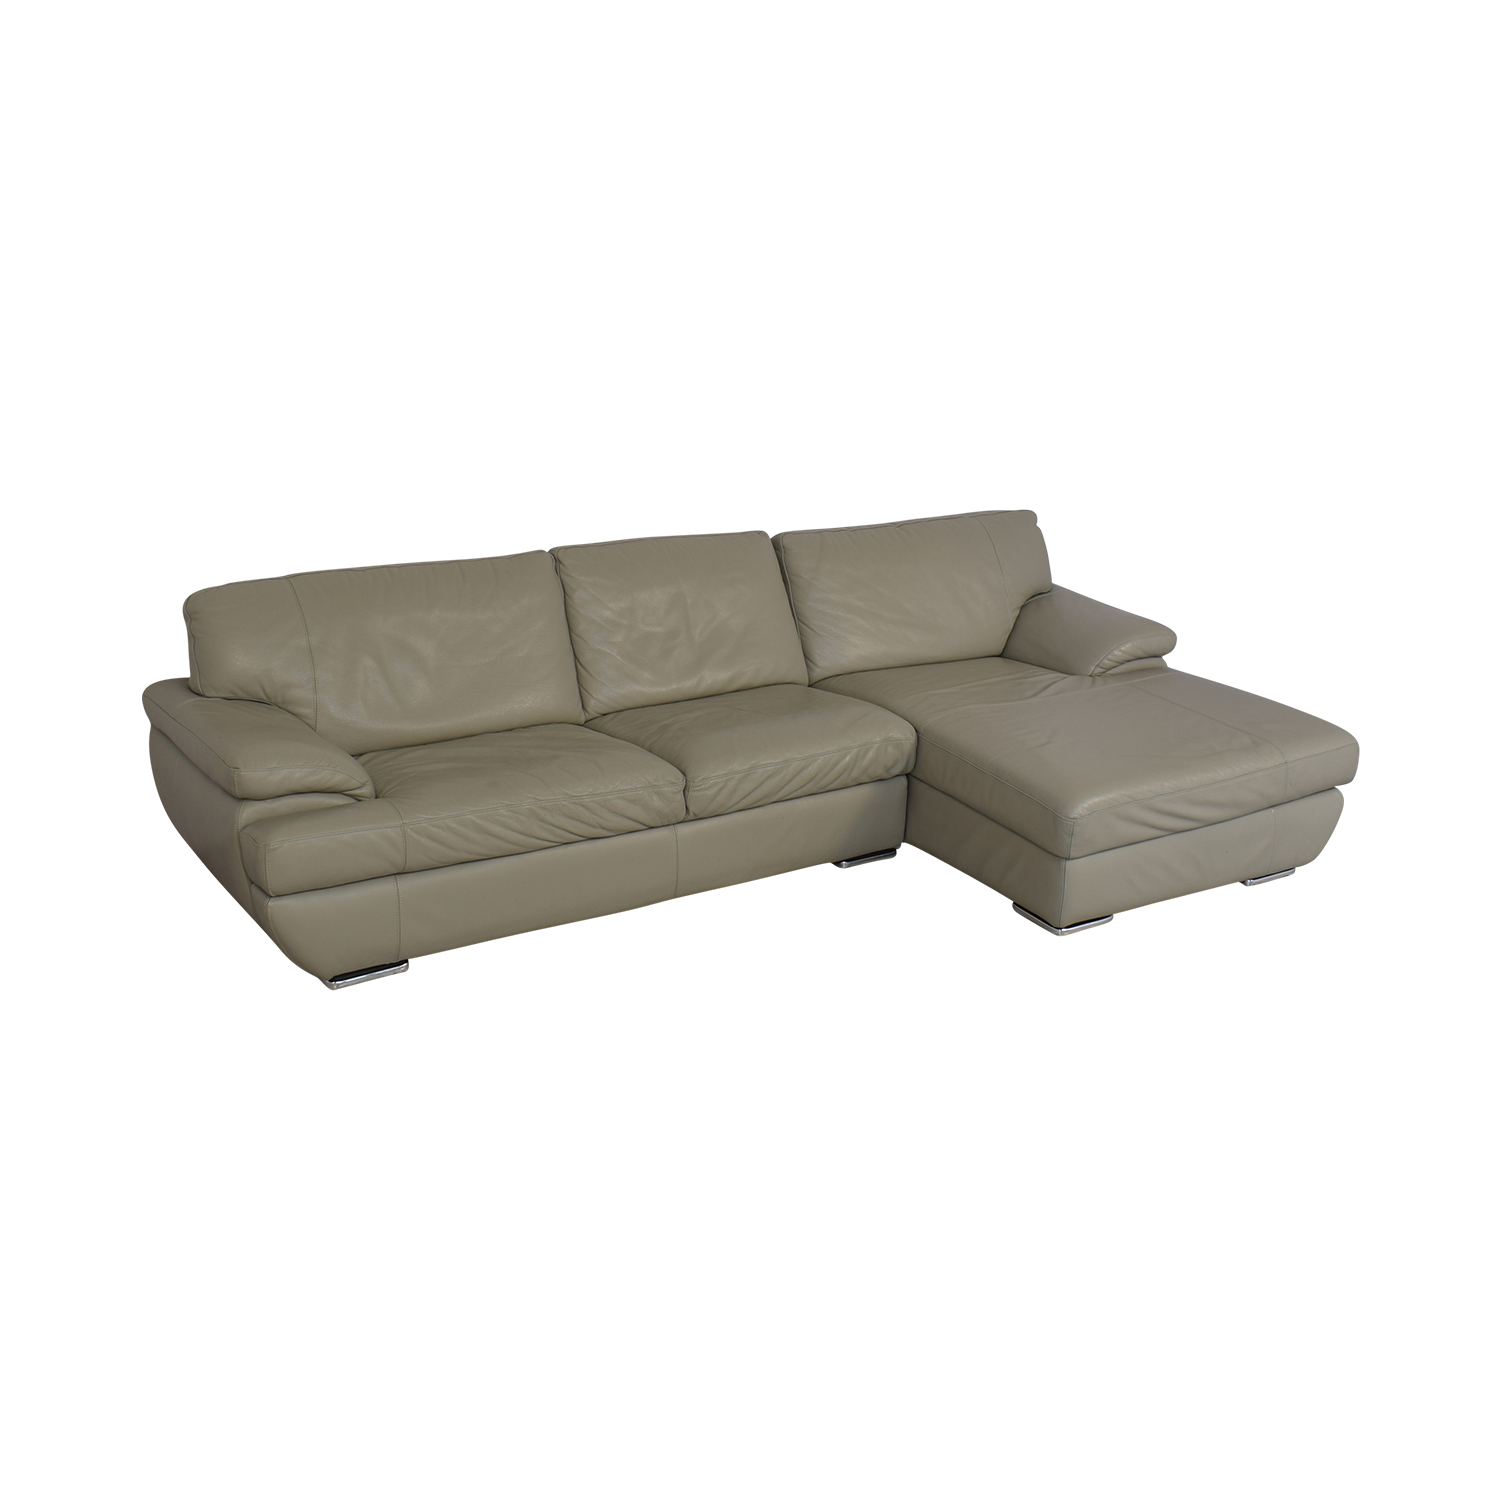 Chateau d'Ax Chateau d'Ax Sectional Sofa with Chaise dimensions